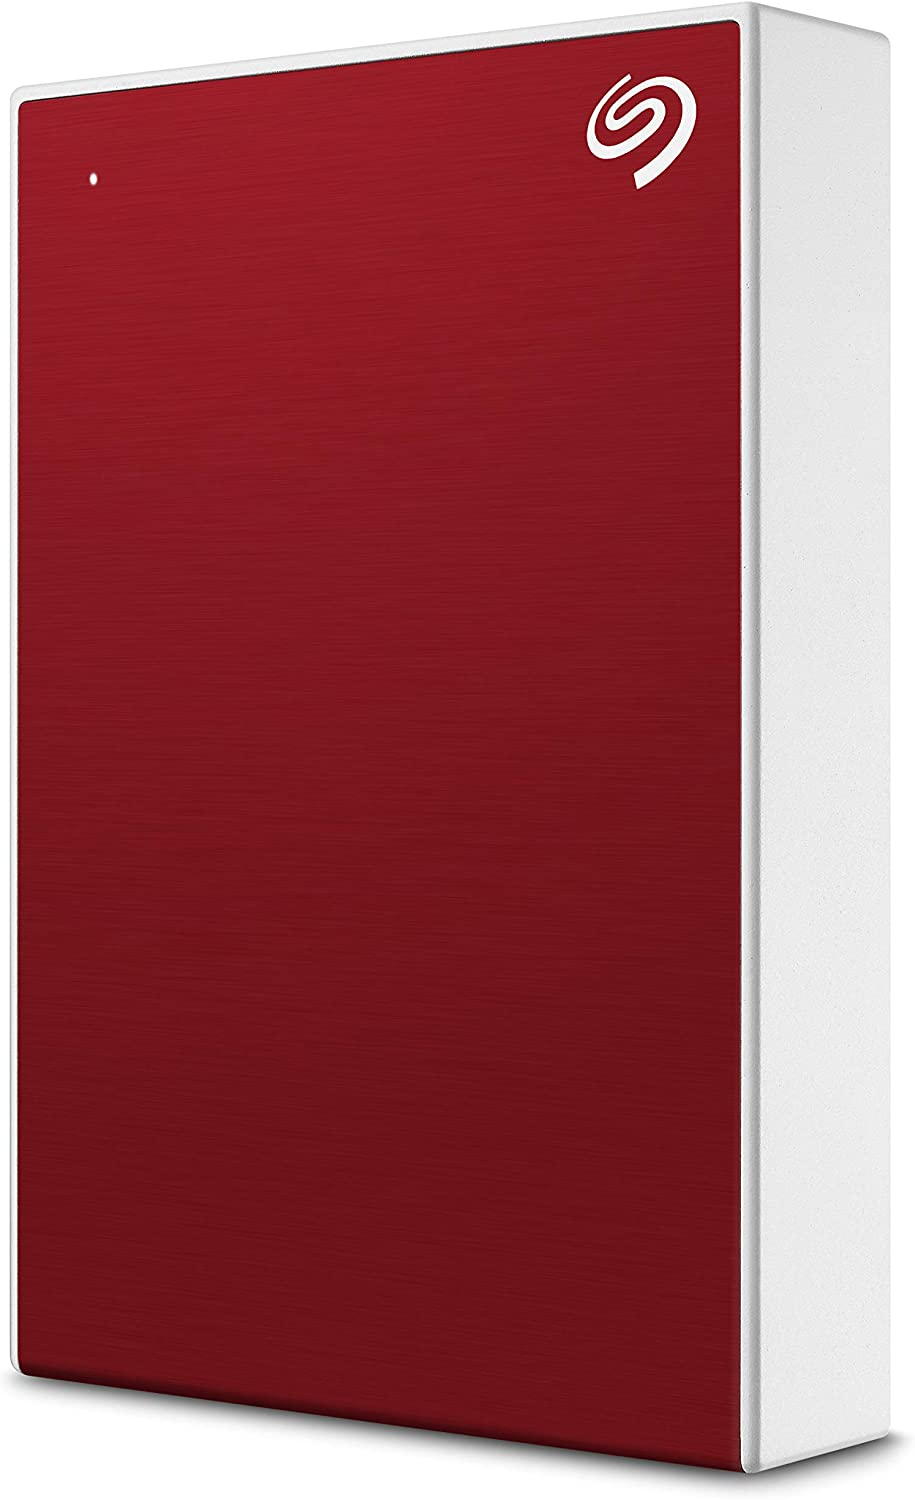 Seagate Backup Plus Portable 5TB External Hard Drive HDD – Red USB 3.0 for PC Laptop and Mac, 1 year MylioCreate, 2 Months Adobe CC Photography (STHP5000403)